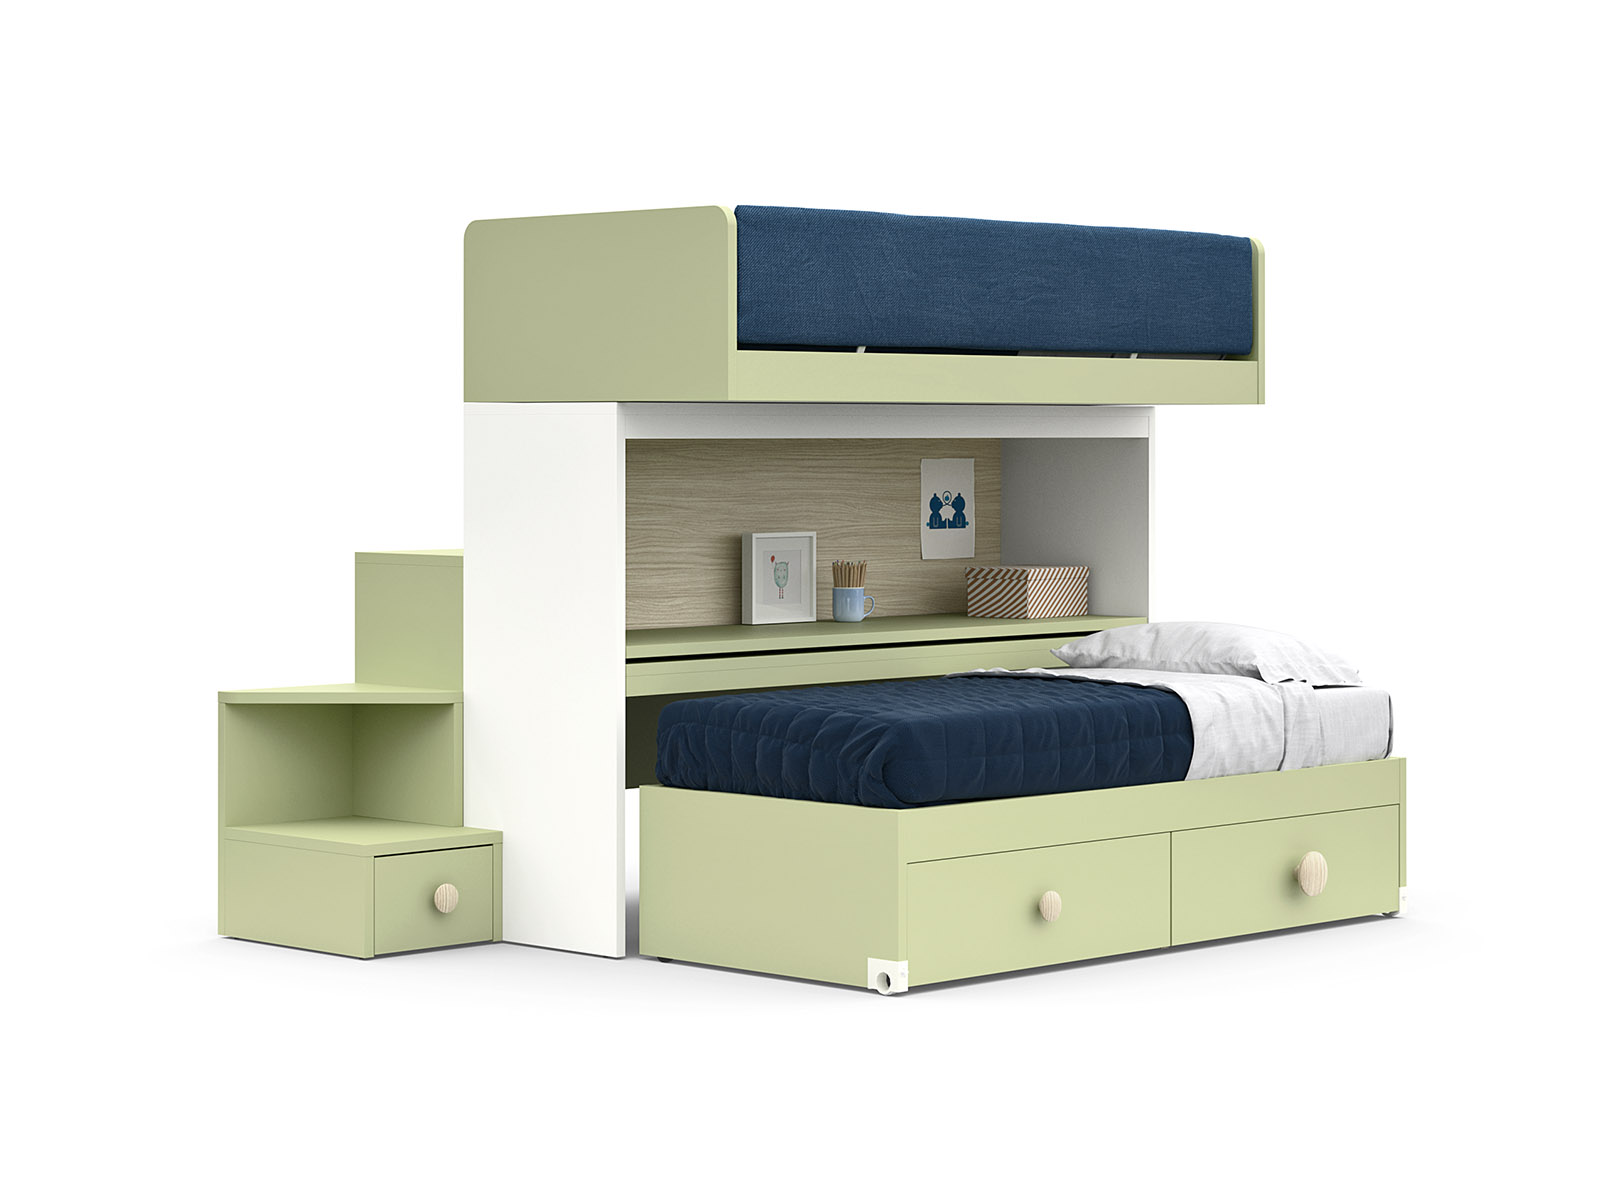 Picture of: Skid Sliding Bunk Bed Nidi